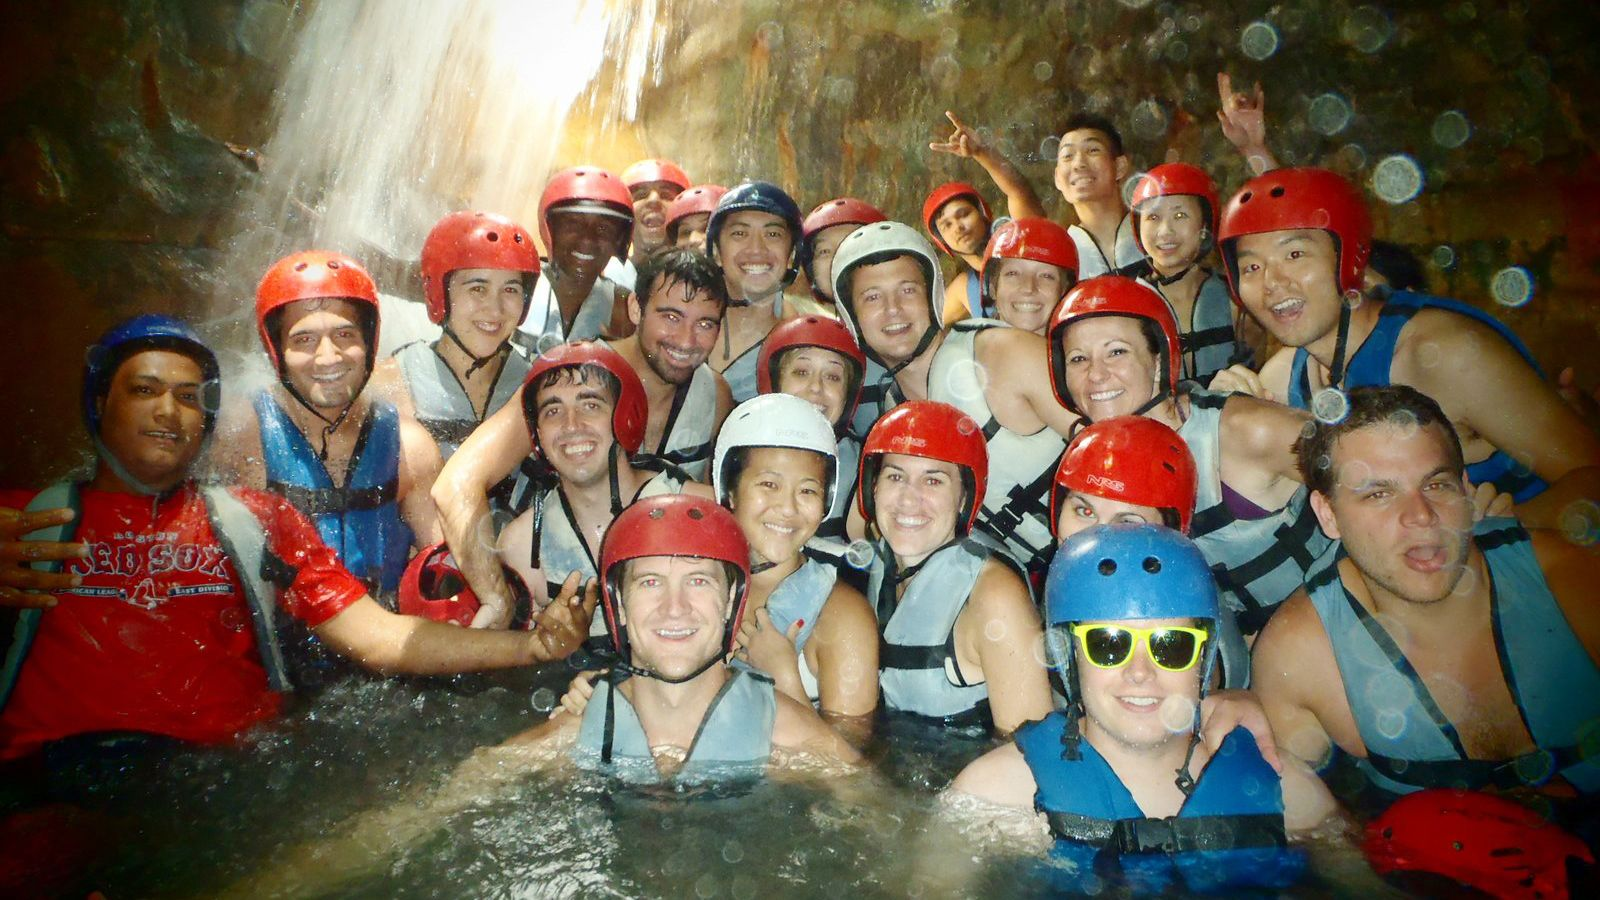 Large group wearing red helmets gathered for a photo in the water